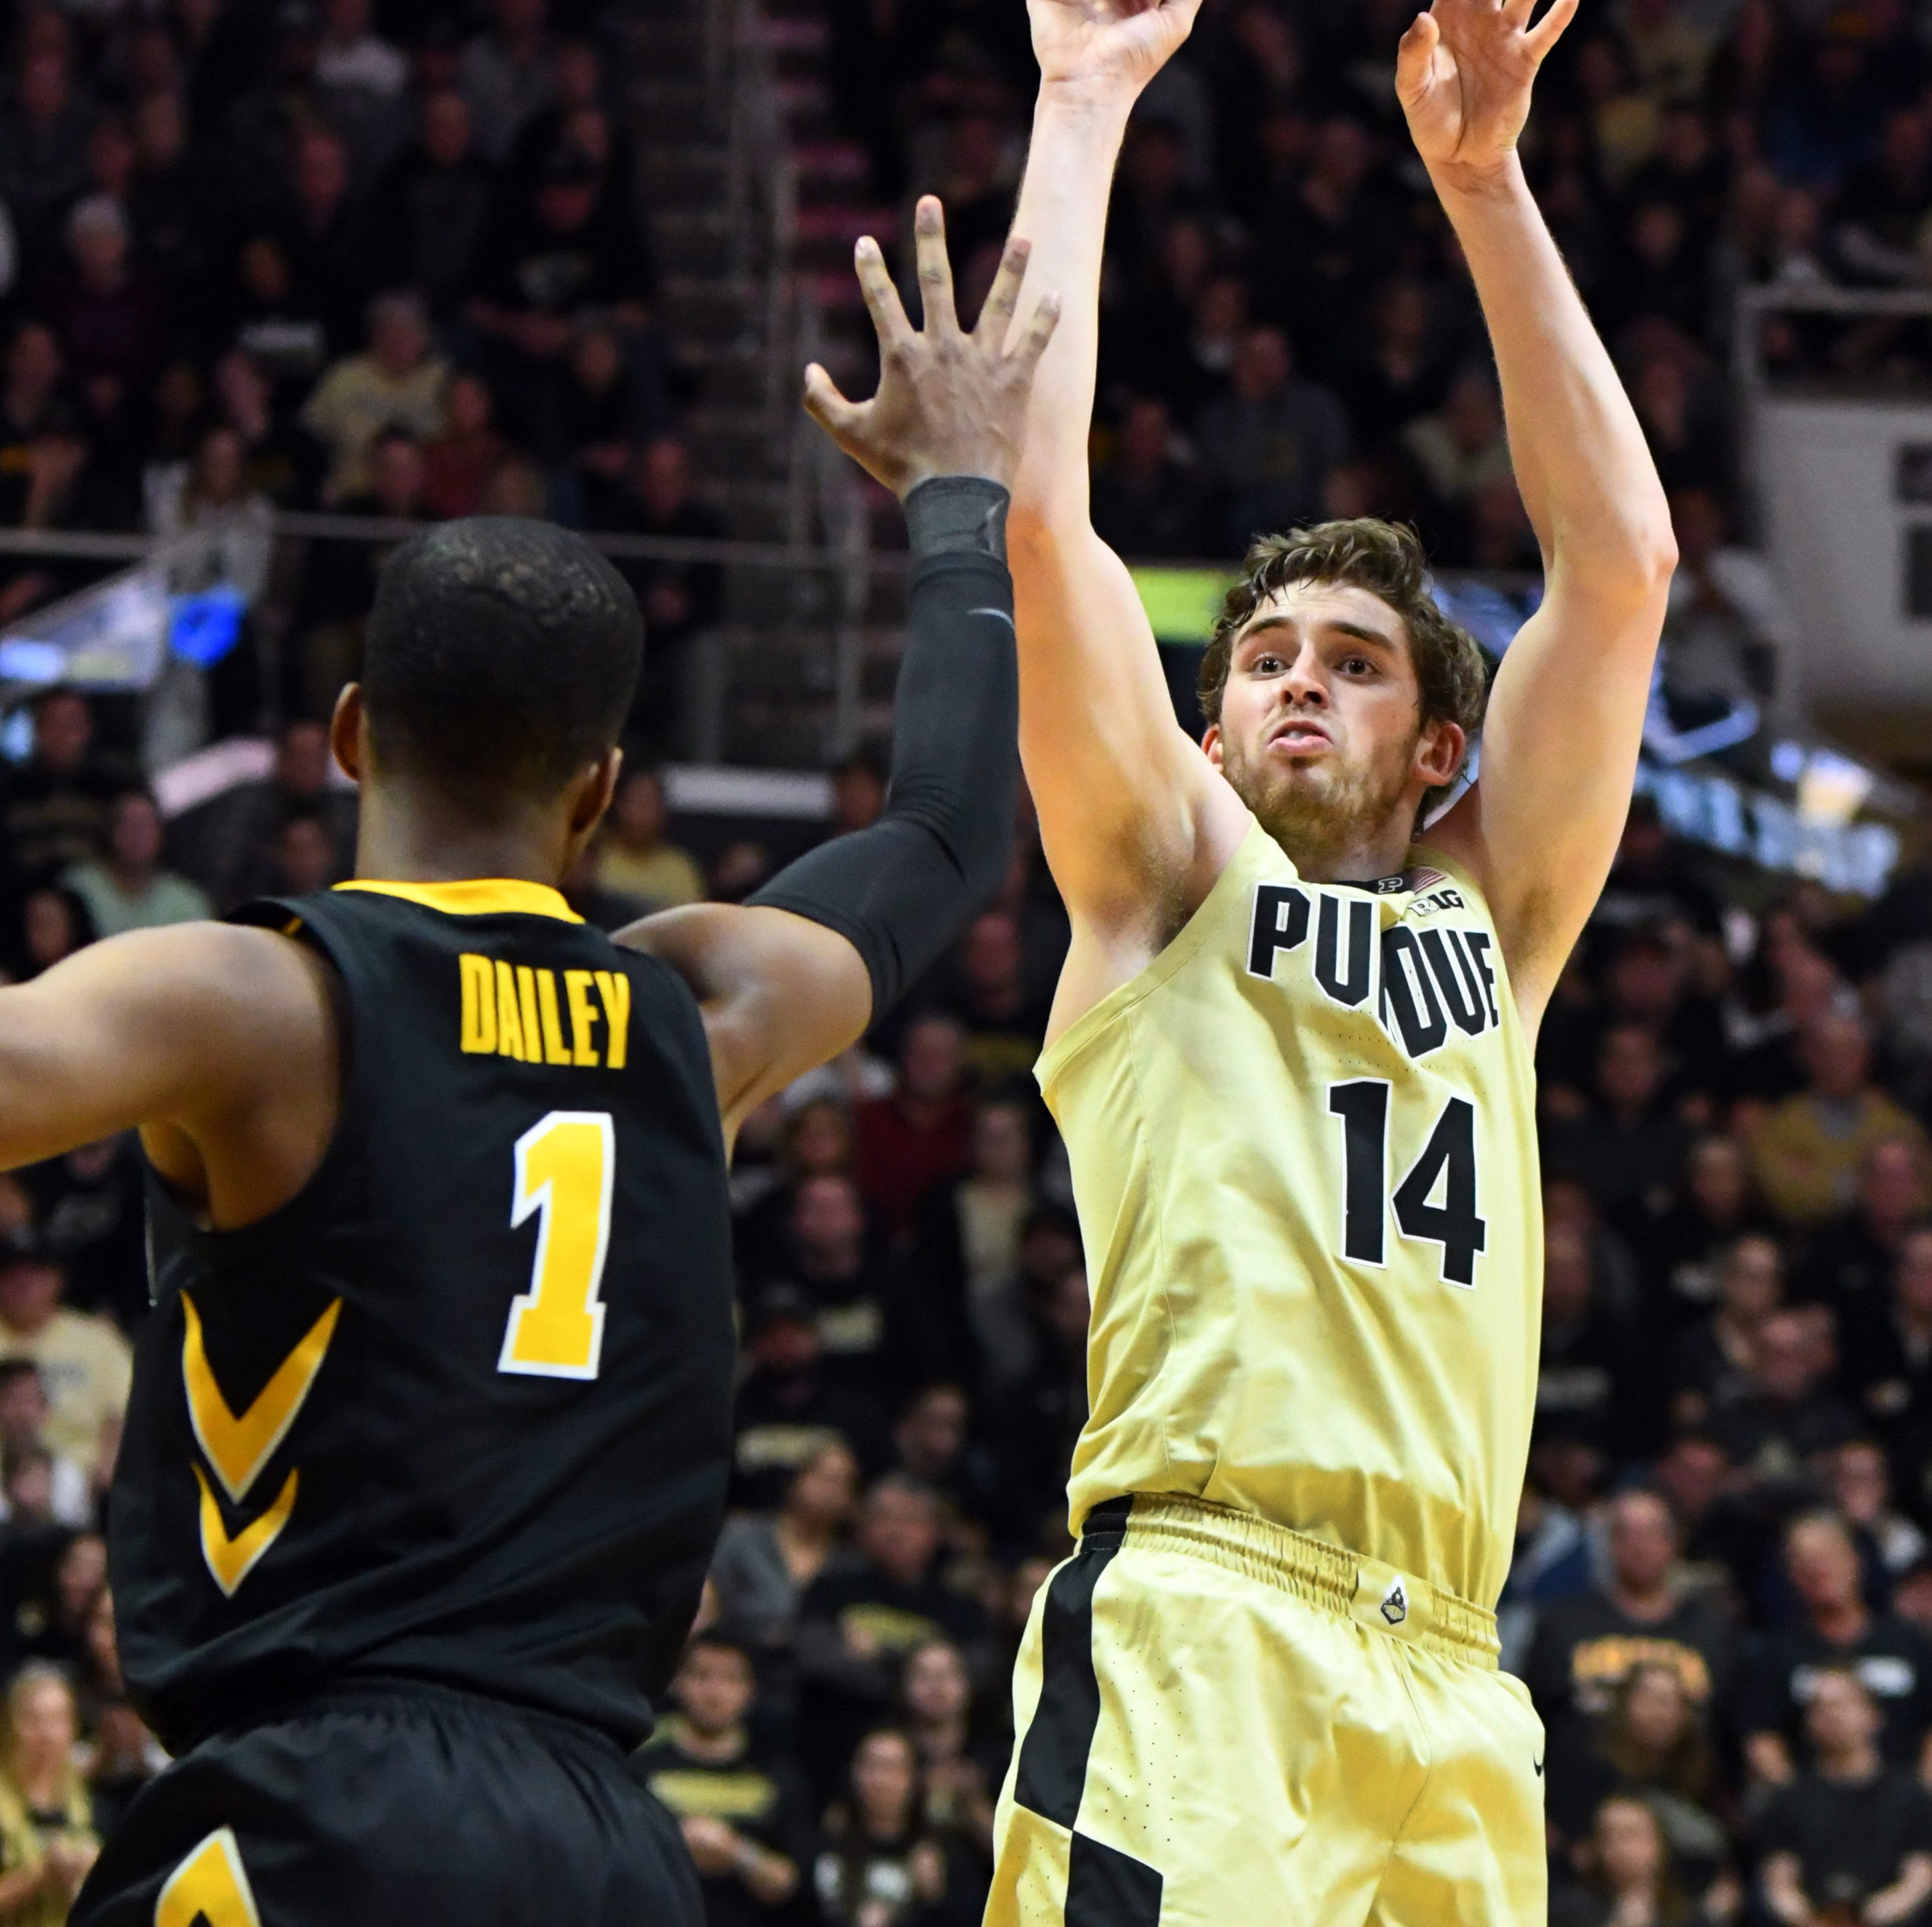 Scouting Purdue men's basketball at Ohio State